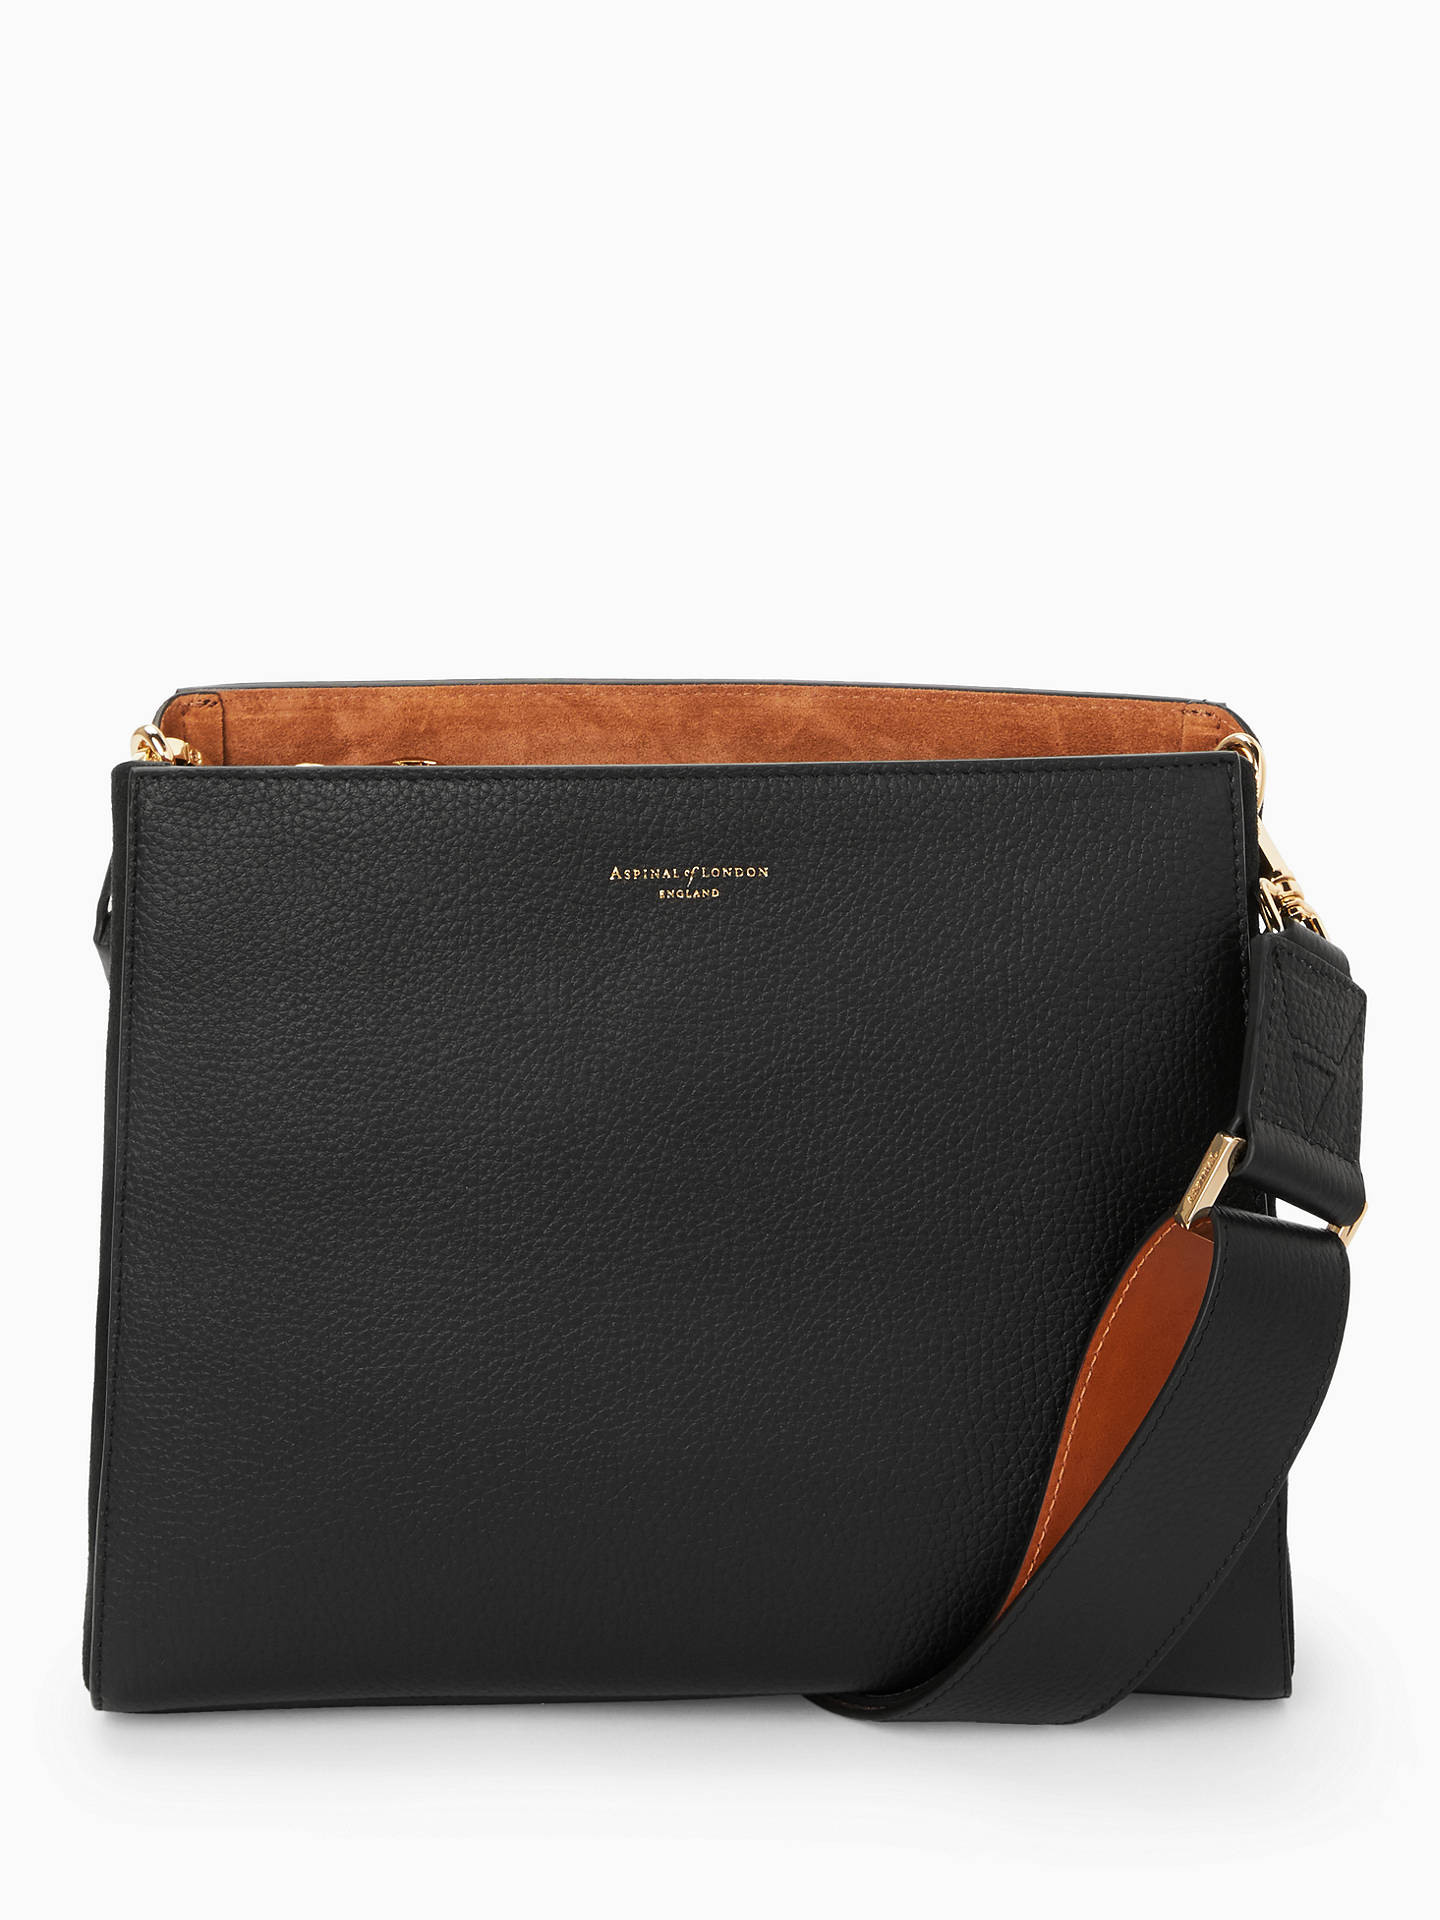 0c4fc4322f89 Aspinal of London Ella Leather Hobo Bag at John Lewis   Partners